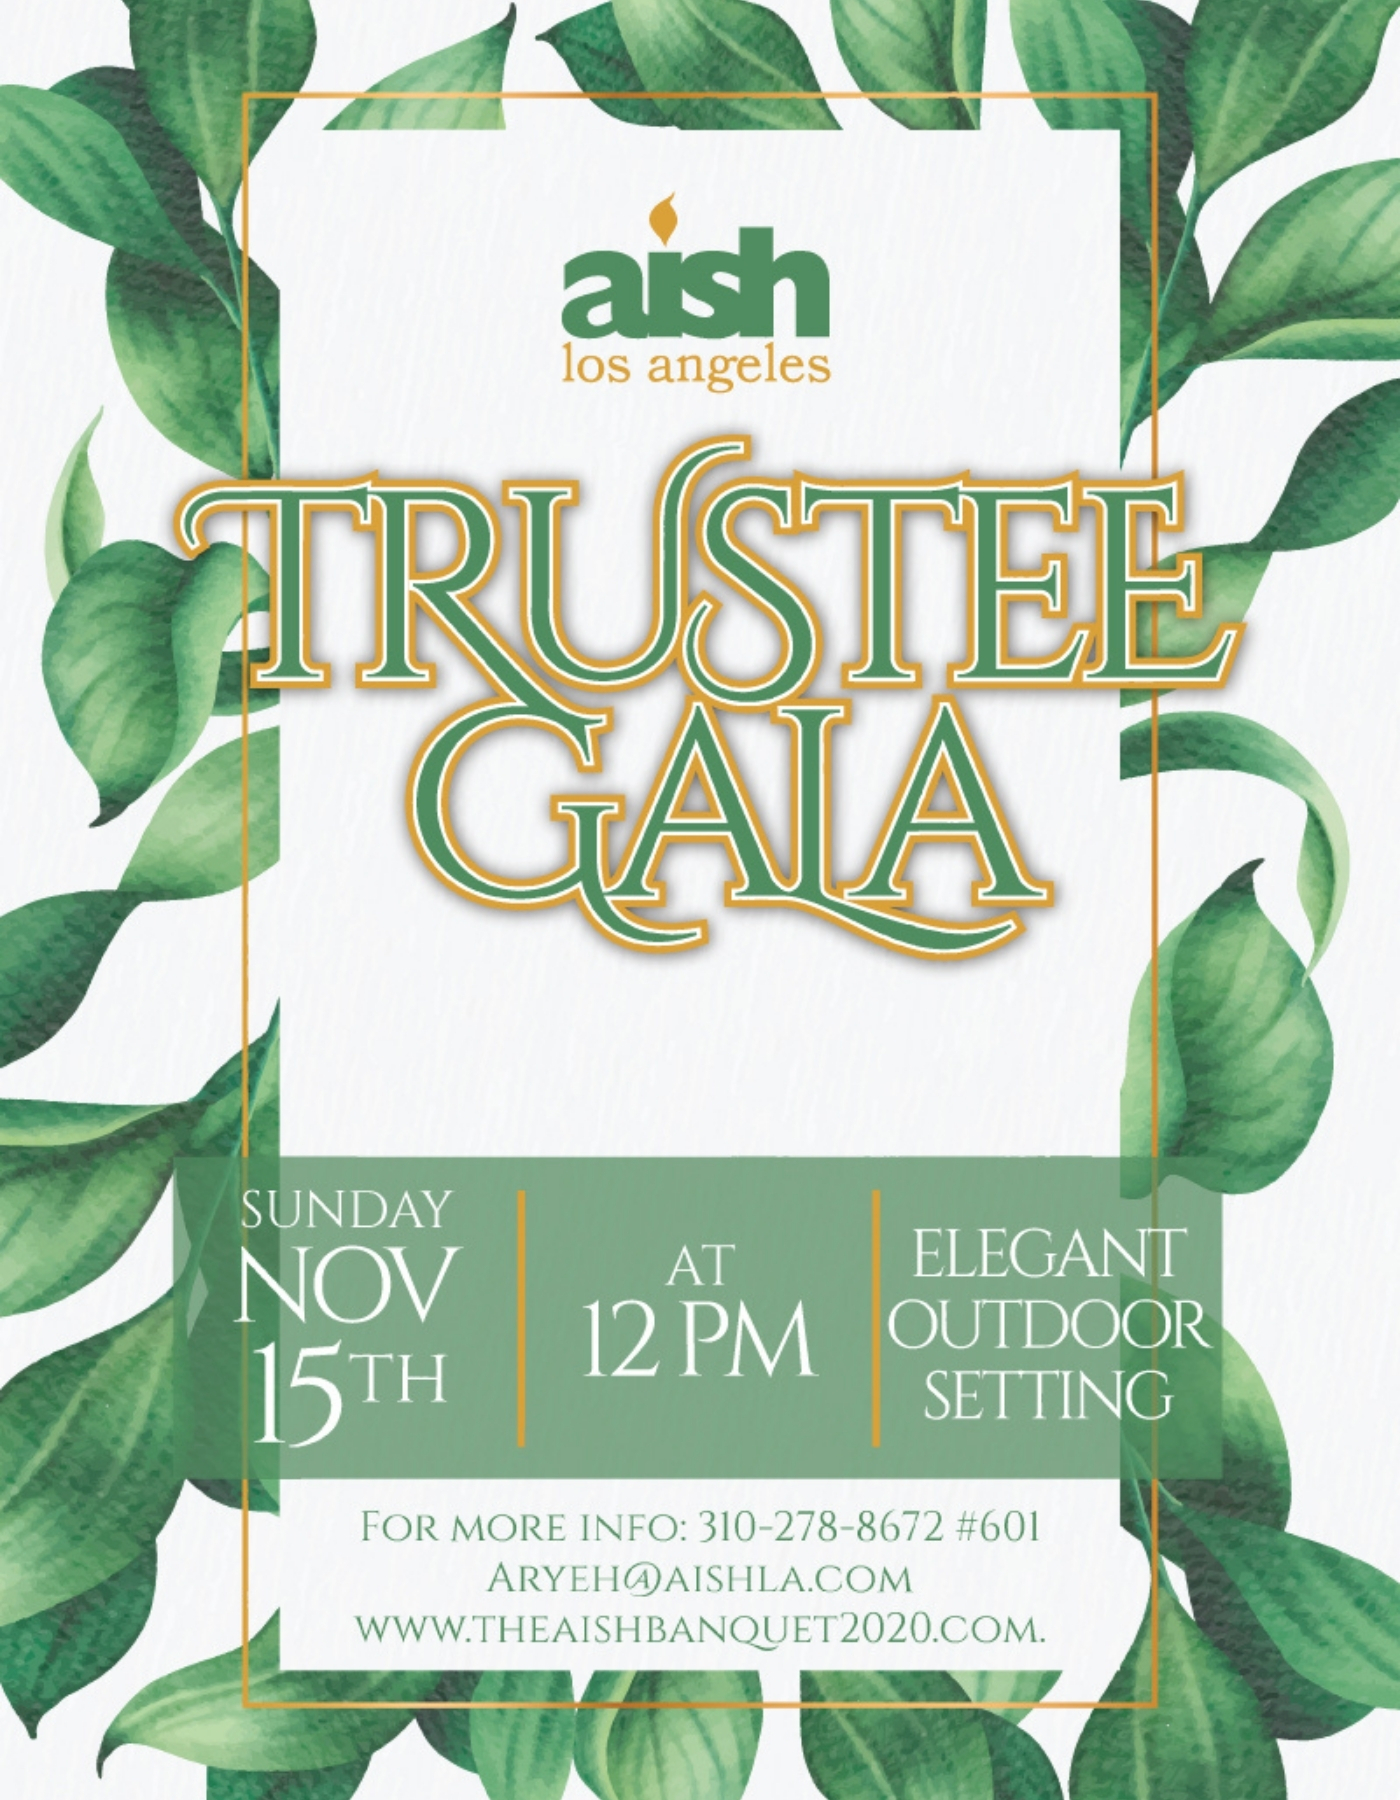 The Aish Banquet Invite - Trimmed